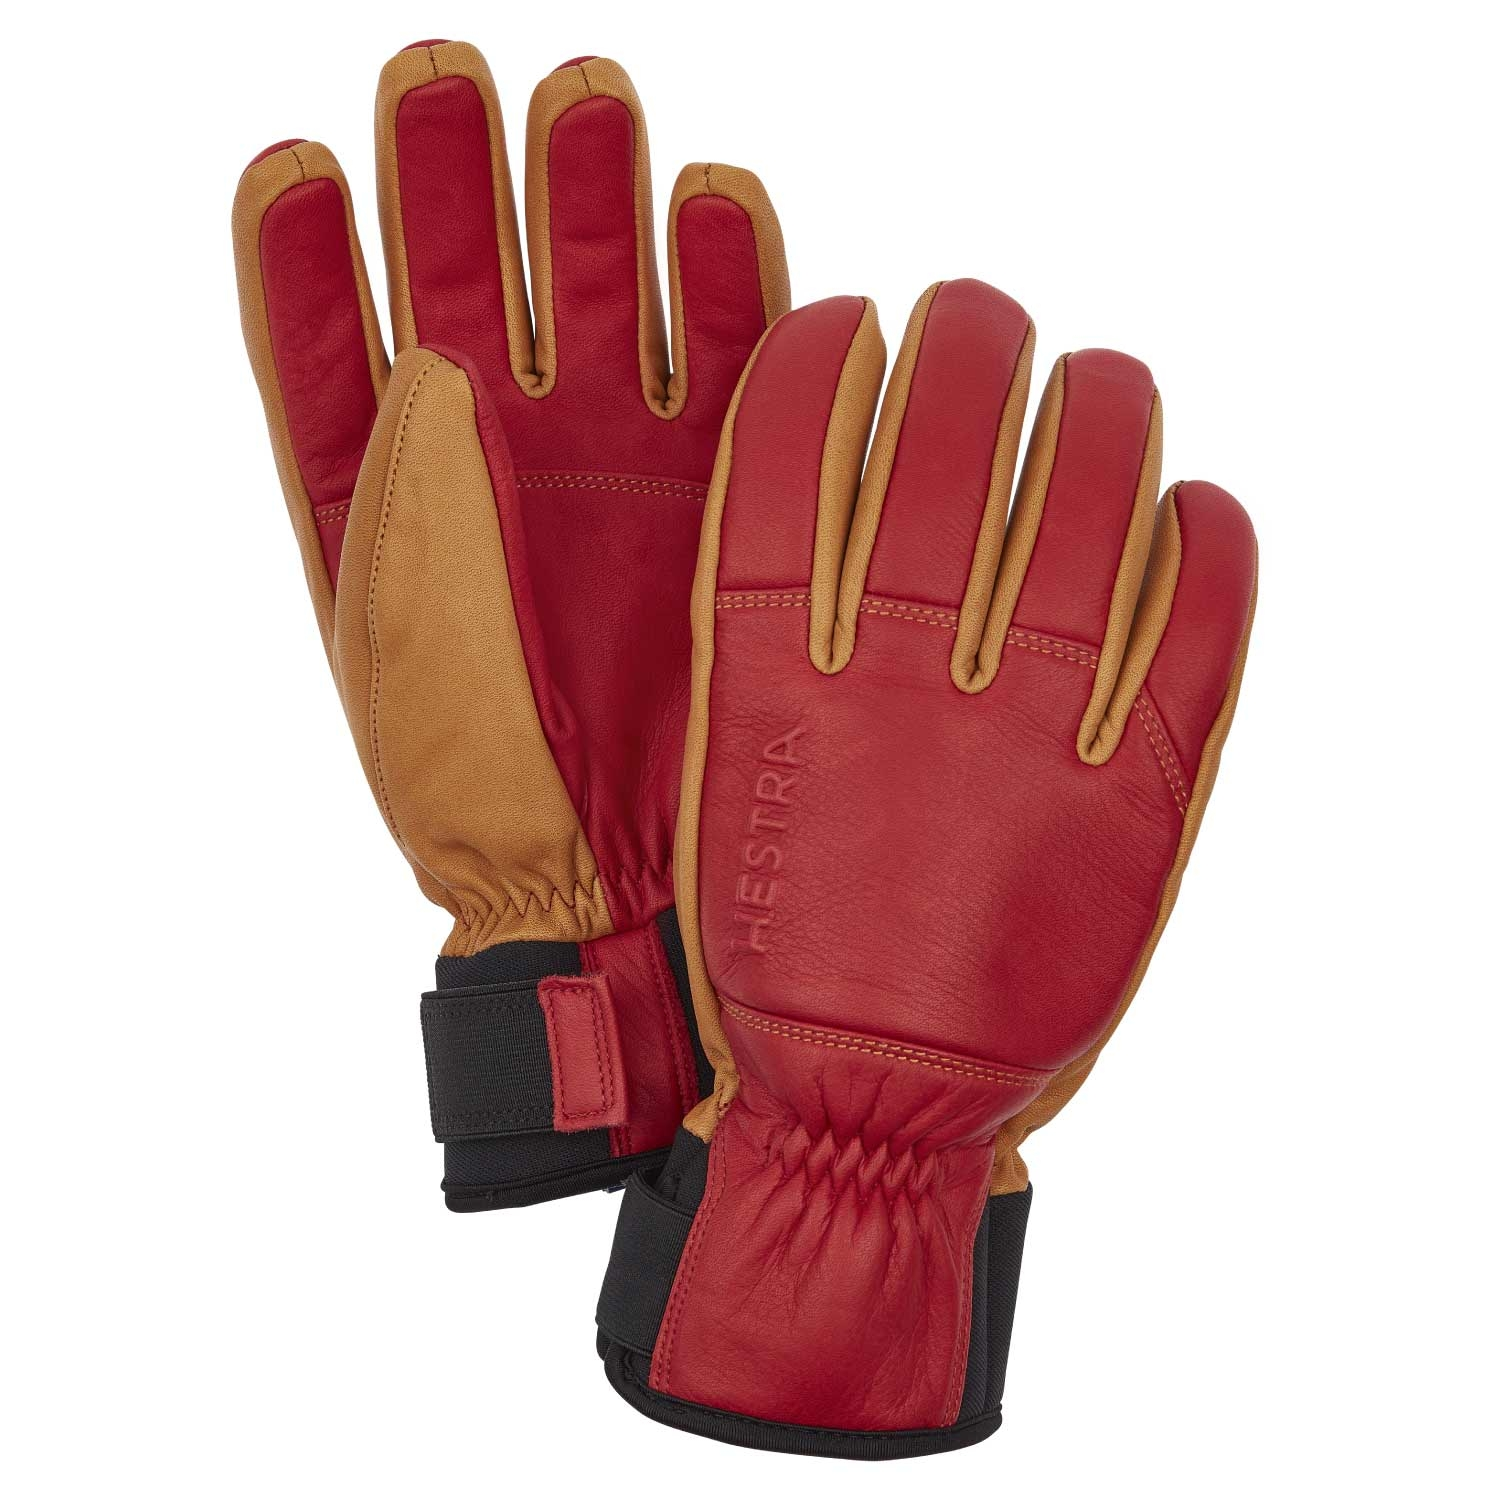 Hestra Omni Gloves Red/Tan 2021